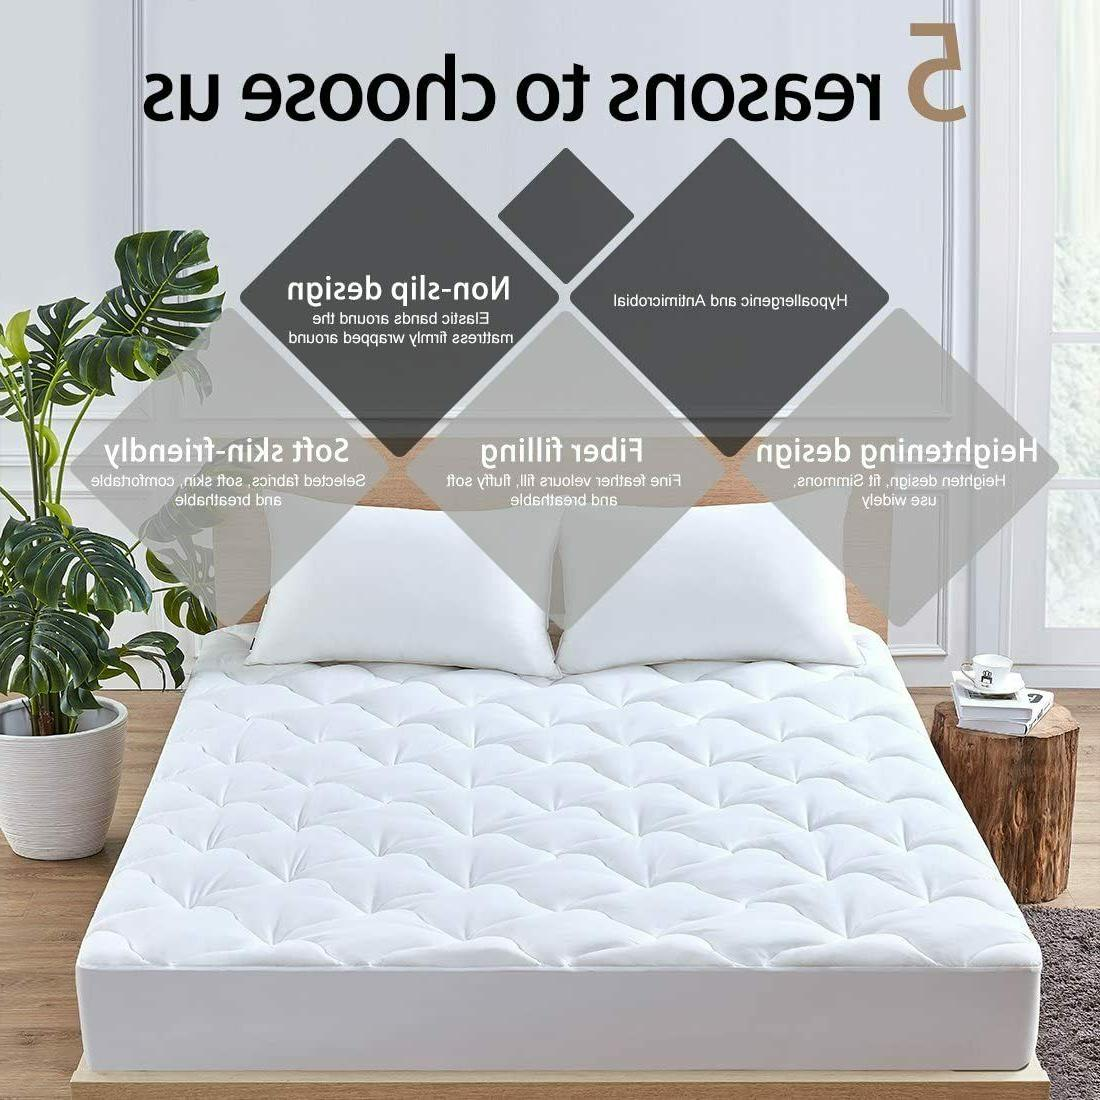 Pillow Queen Bed Topper Pad